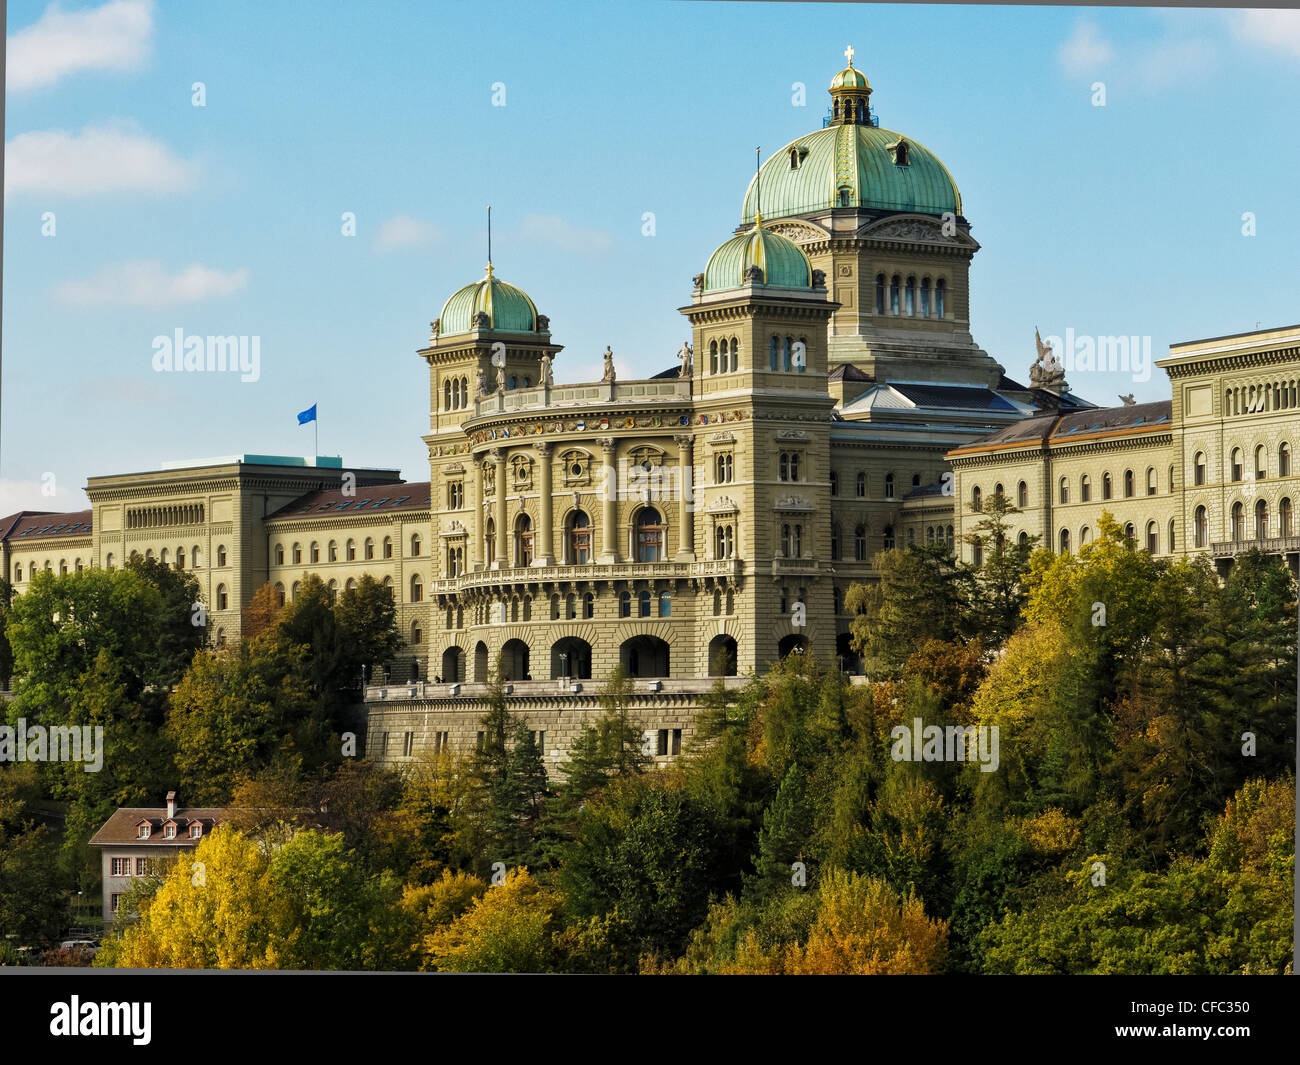 Bern, federal parliament building, capital, politics, canton Bern, government, Switzerland, town, government, seat - Stock Image